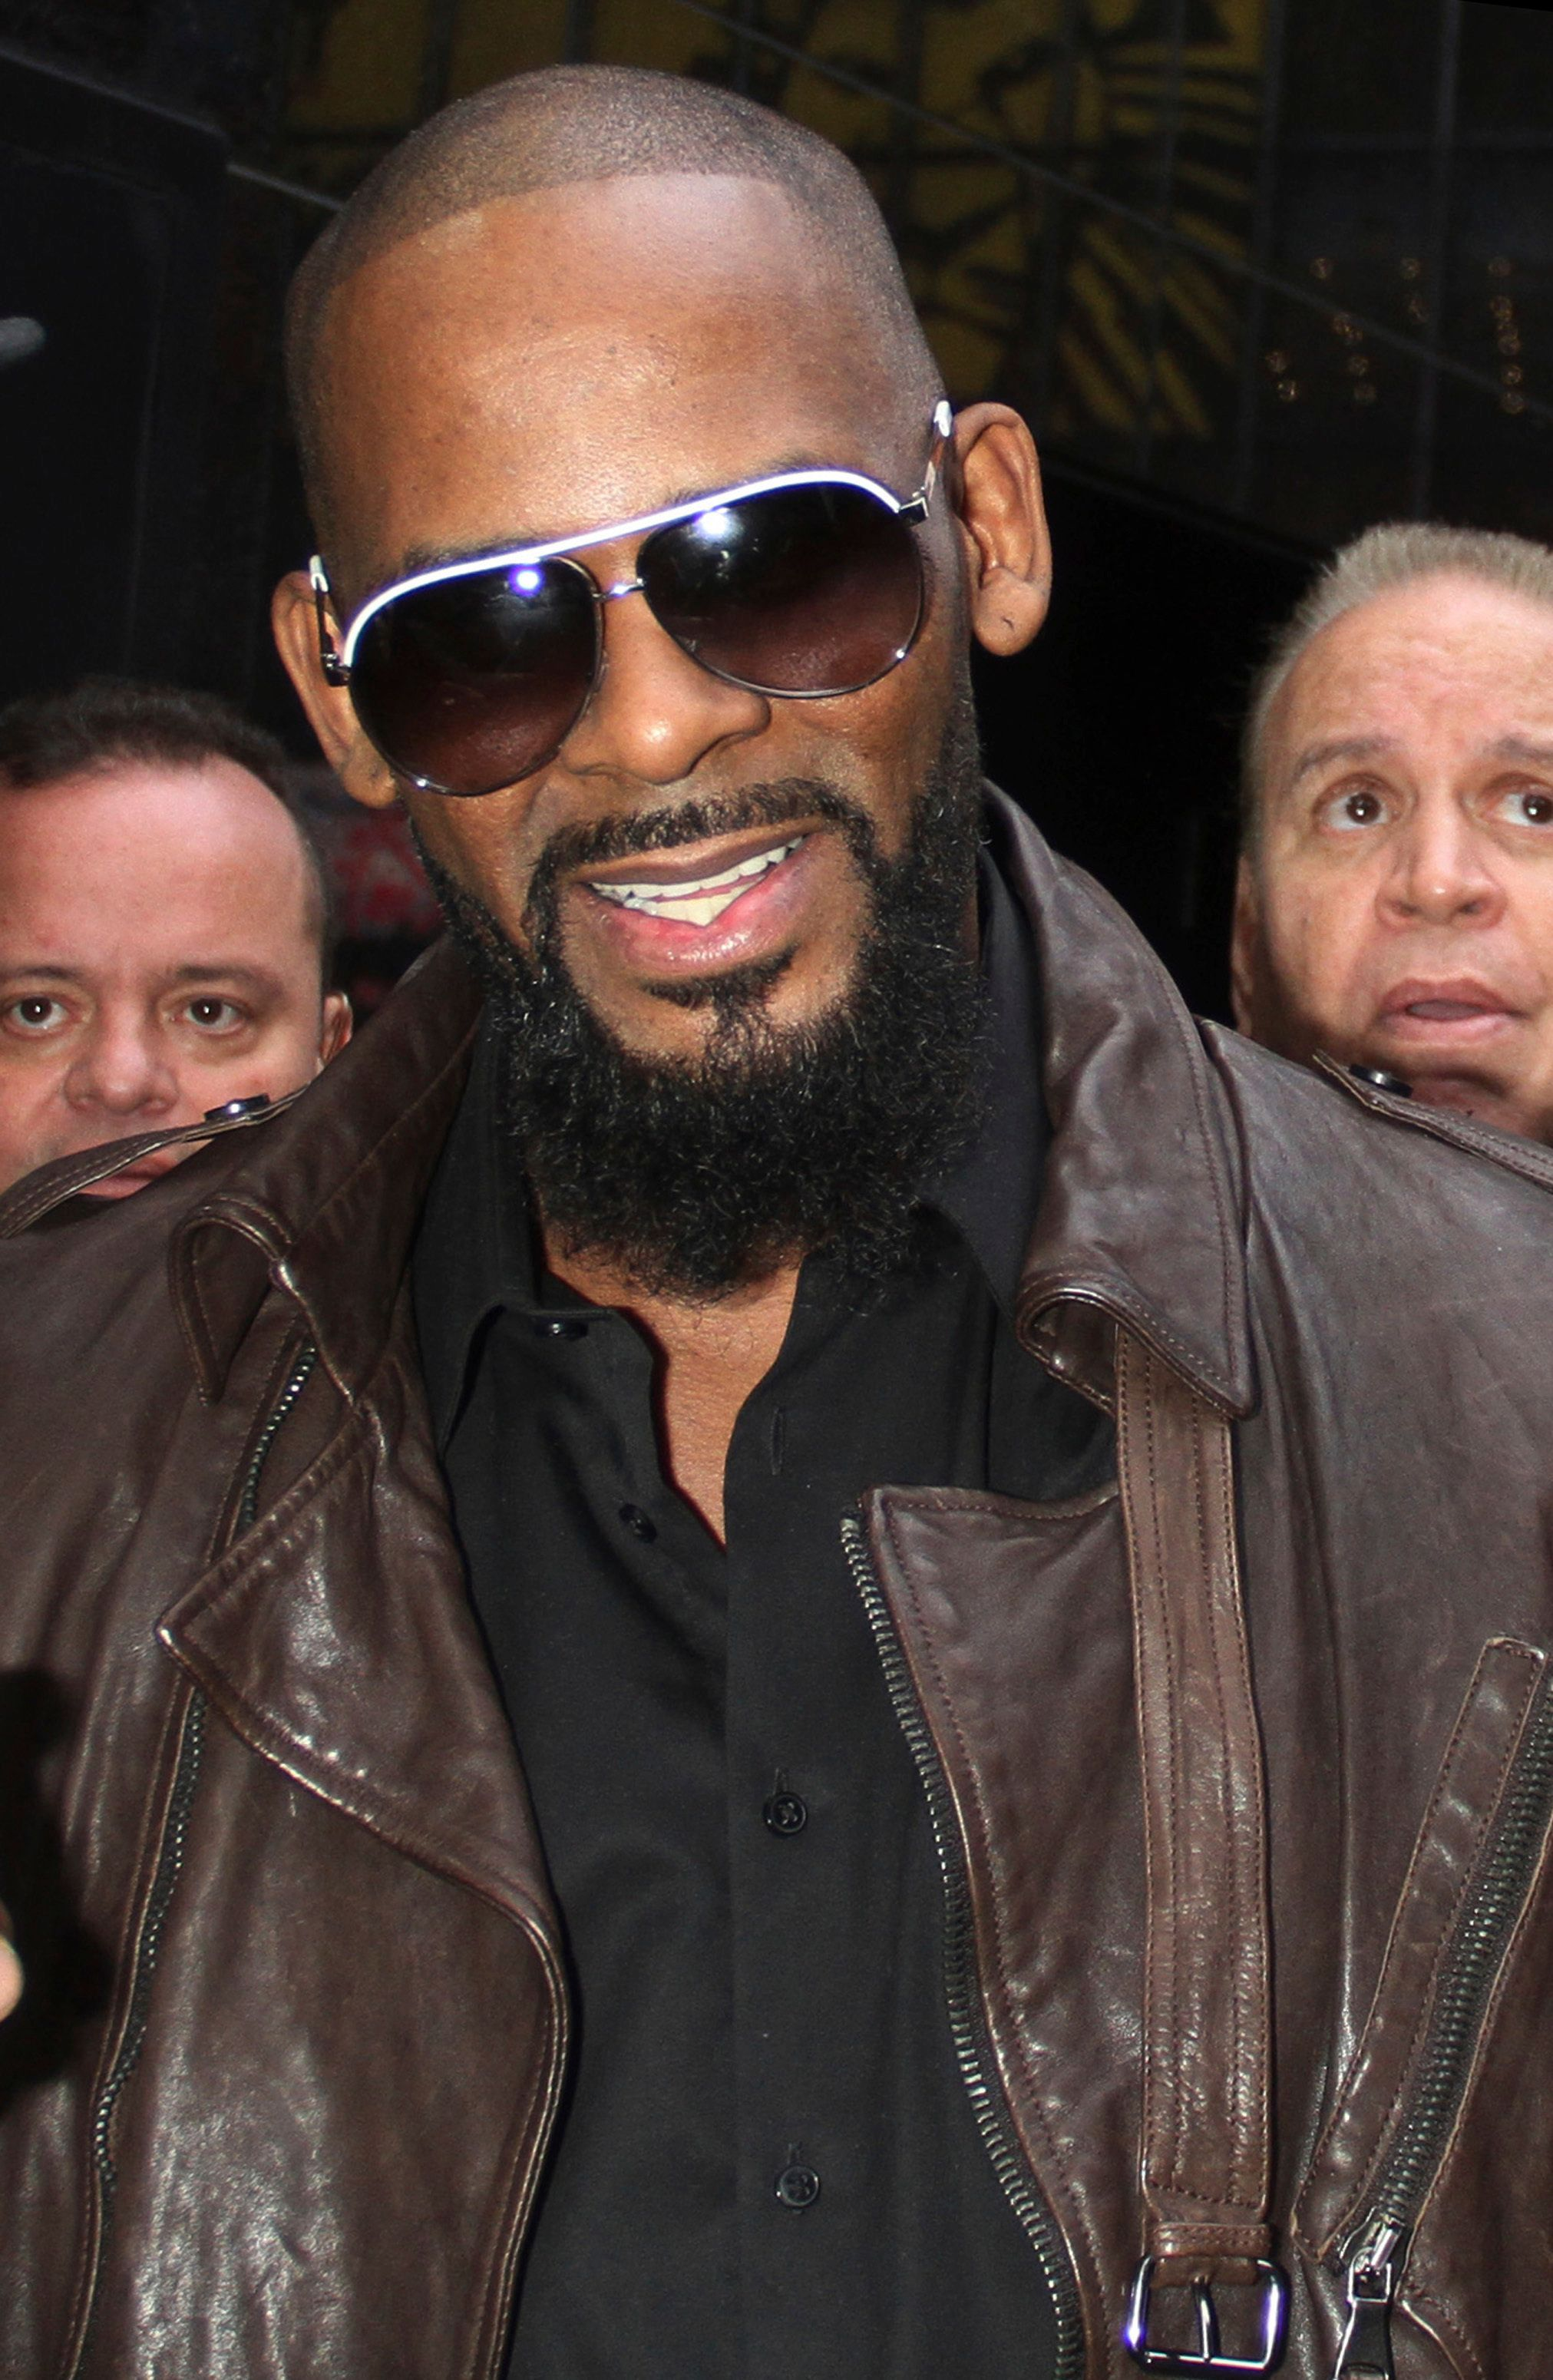 Westlake Legal Group 5c3b165a25000031007daf25 Illinois Officials Deny Permit For R. Kelly-Hosted Concert, Citing Security